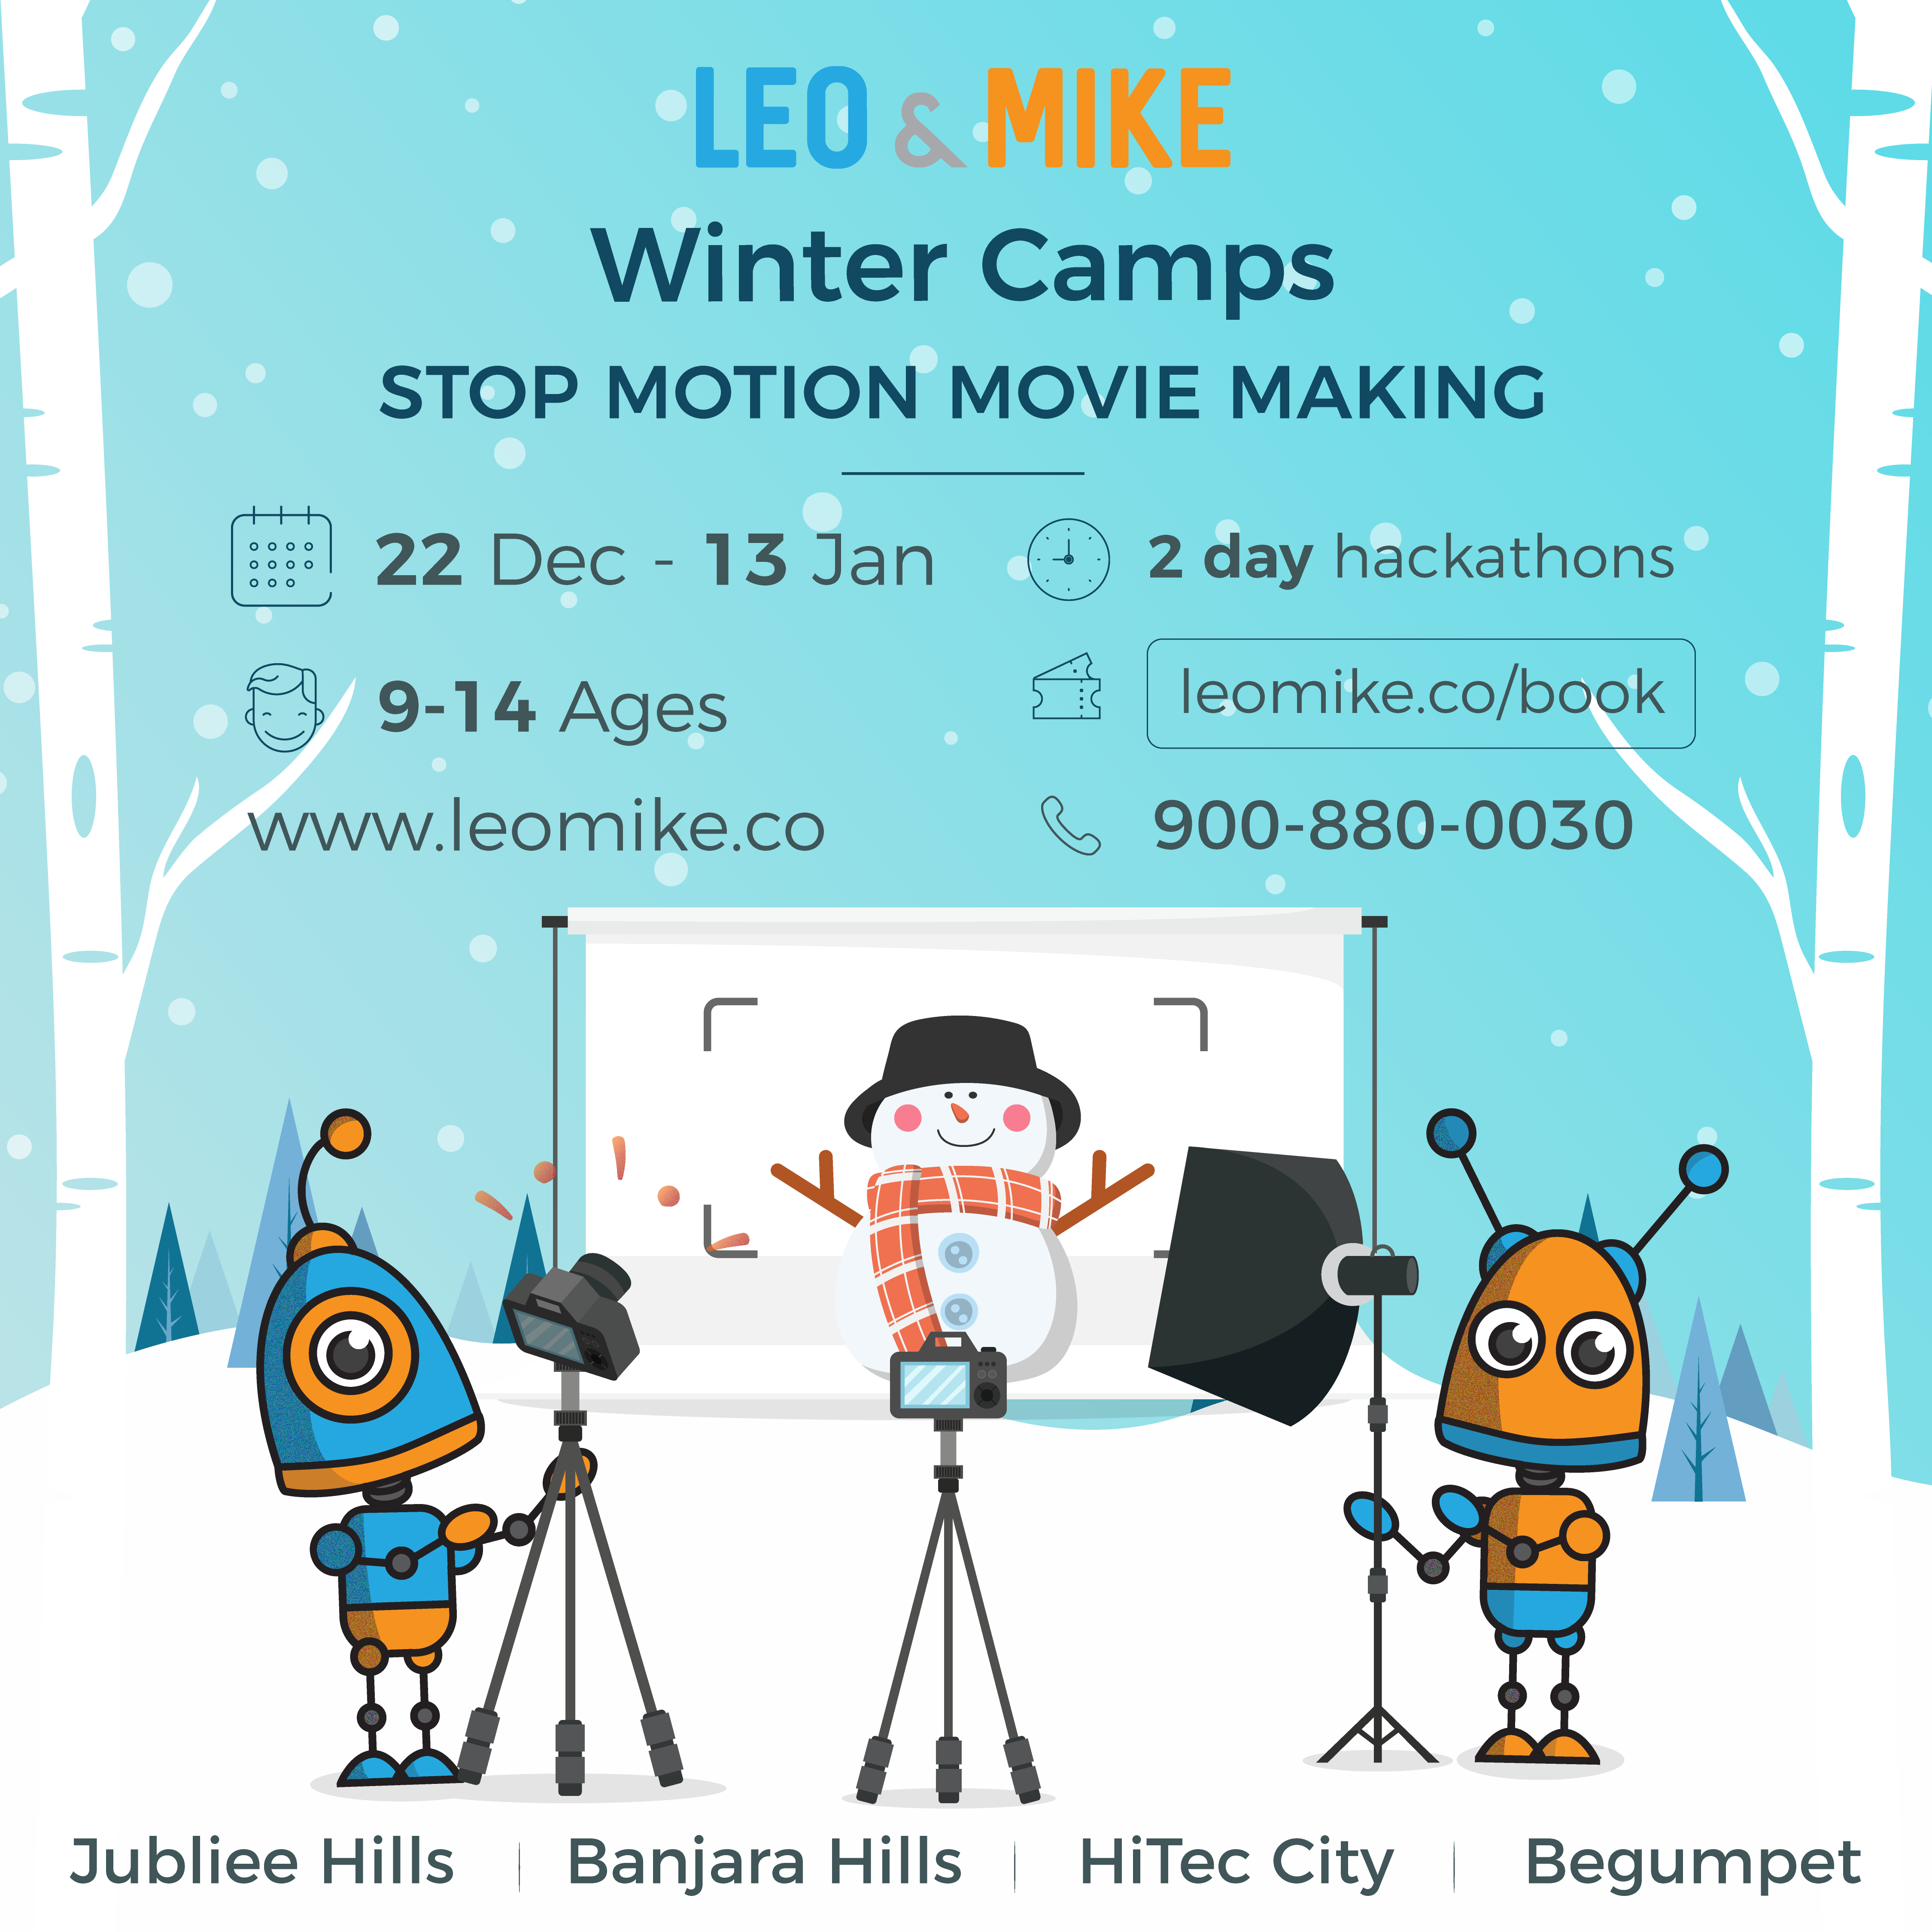 Stop motion movie making for 9-14 years old @ Collab House